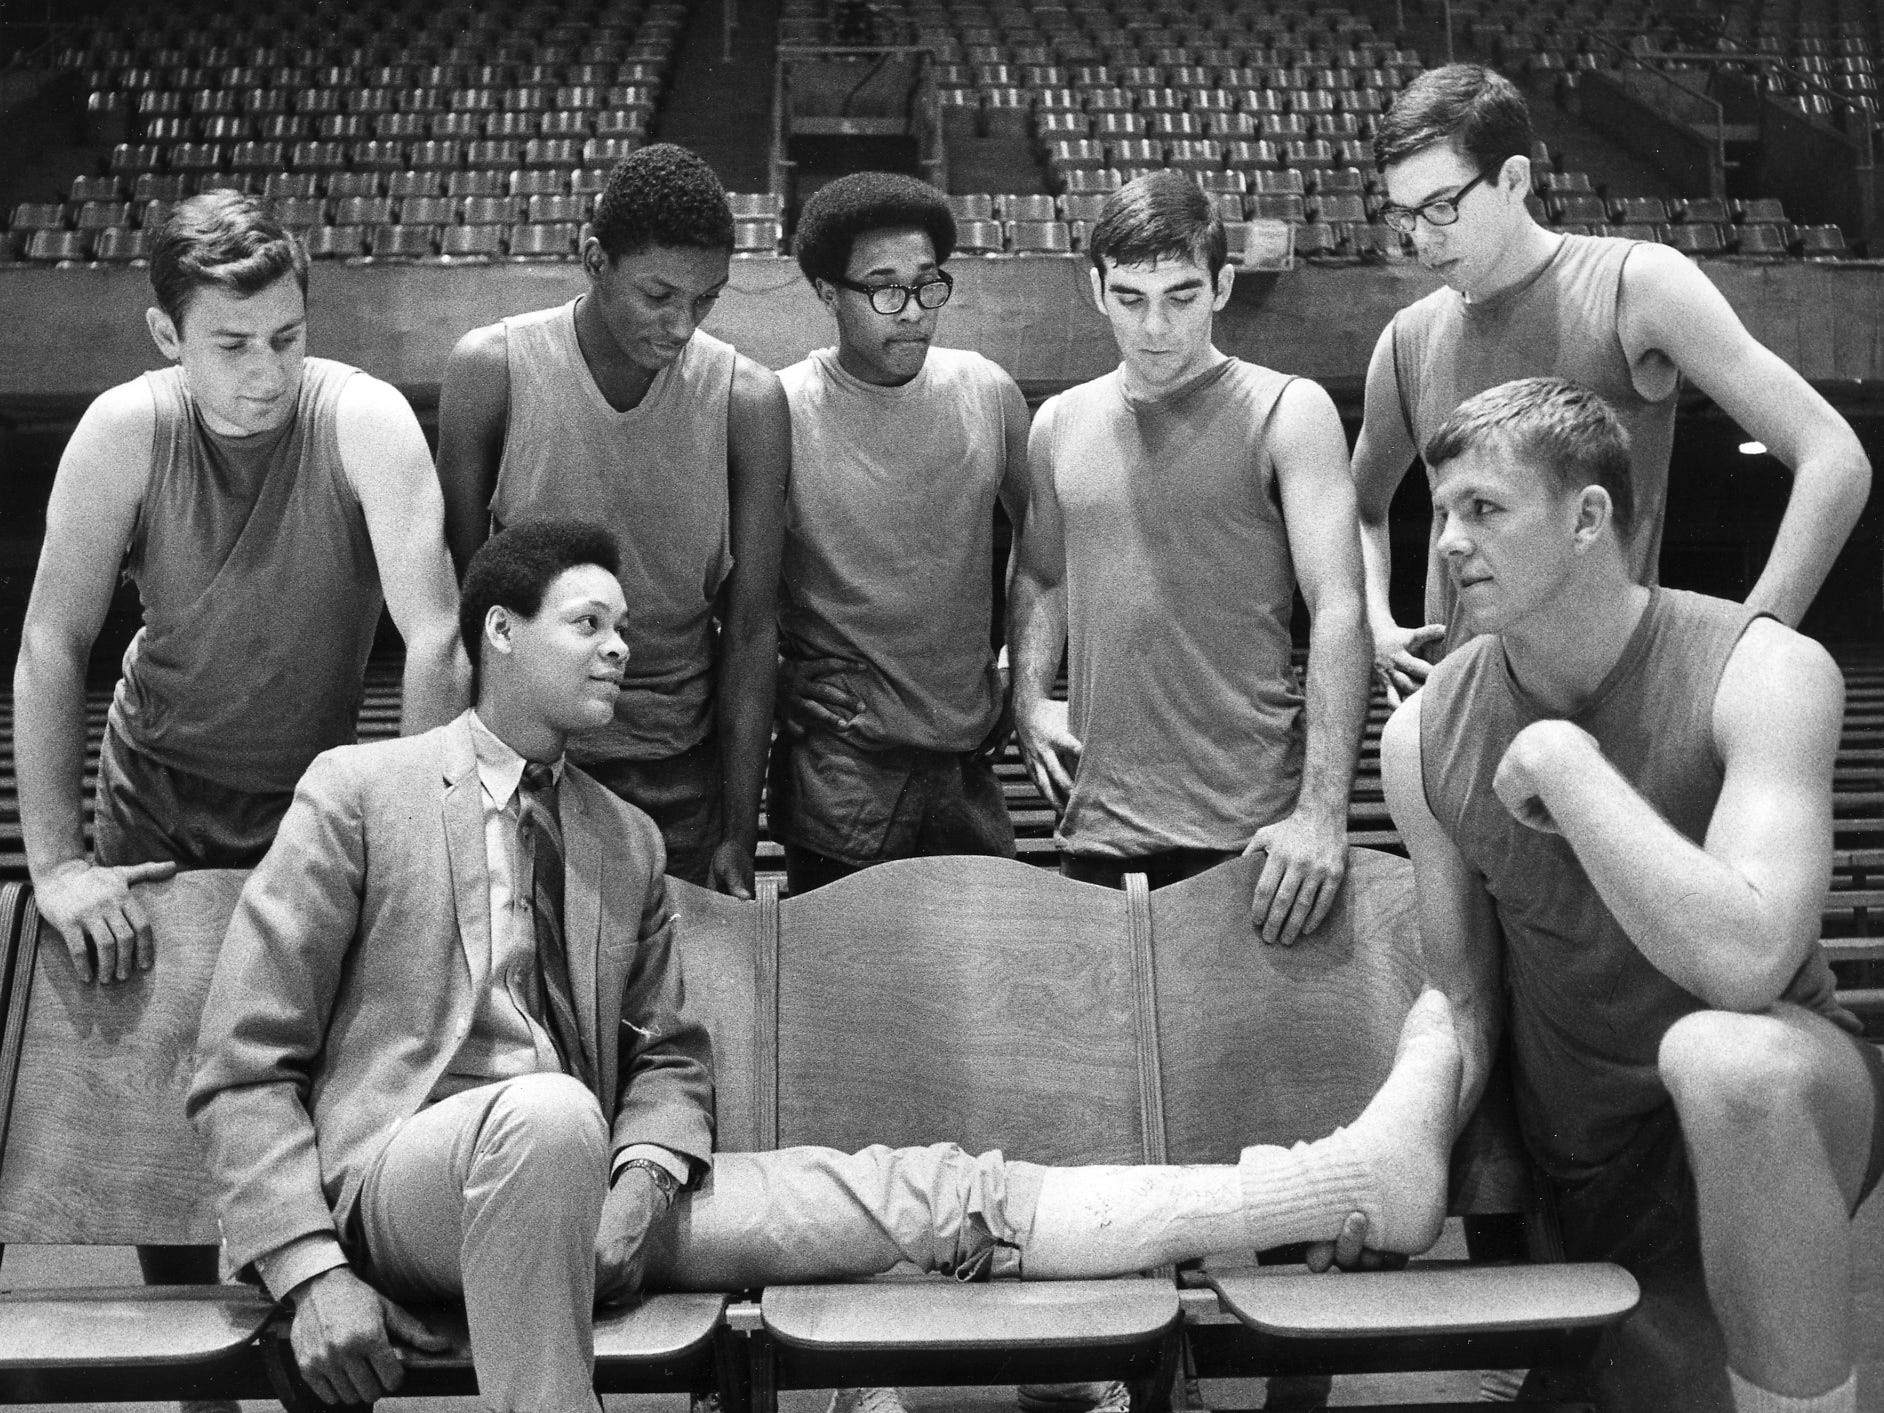 The year is 1969. Cedar Rapids players gather around their No. 2 scorer, Rick Williams, who suffered a broken foot in the districk tournament final.